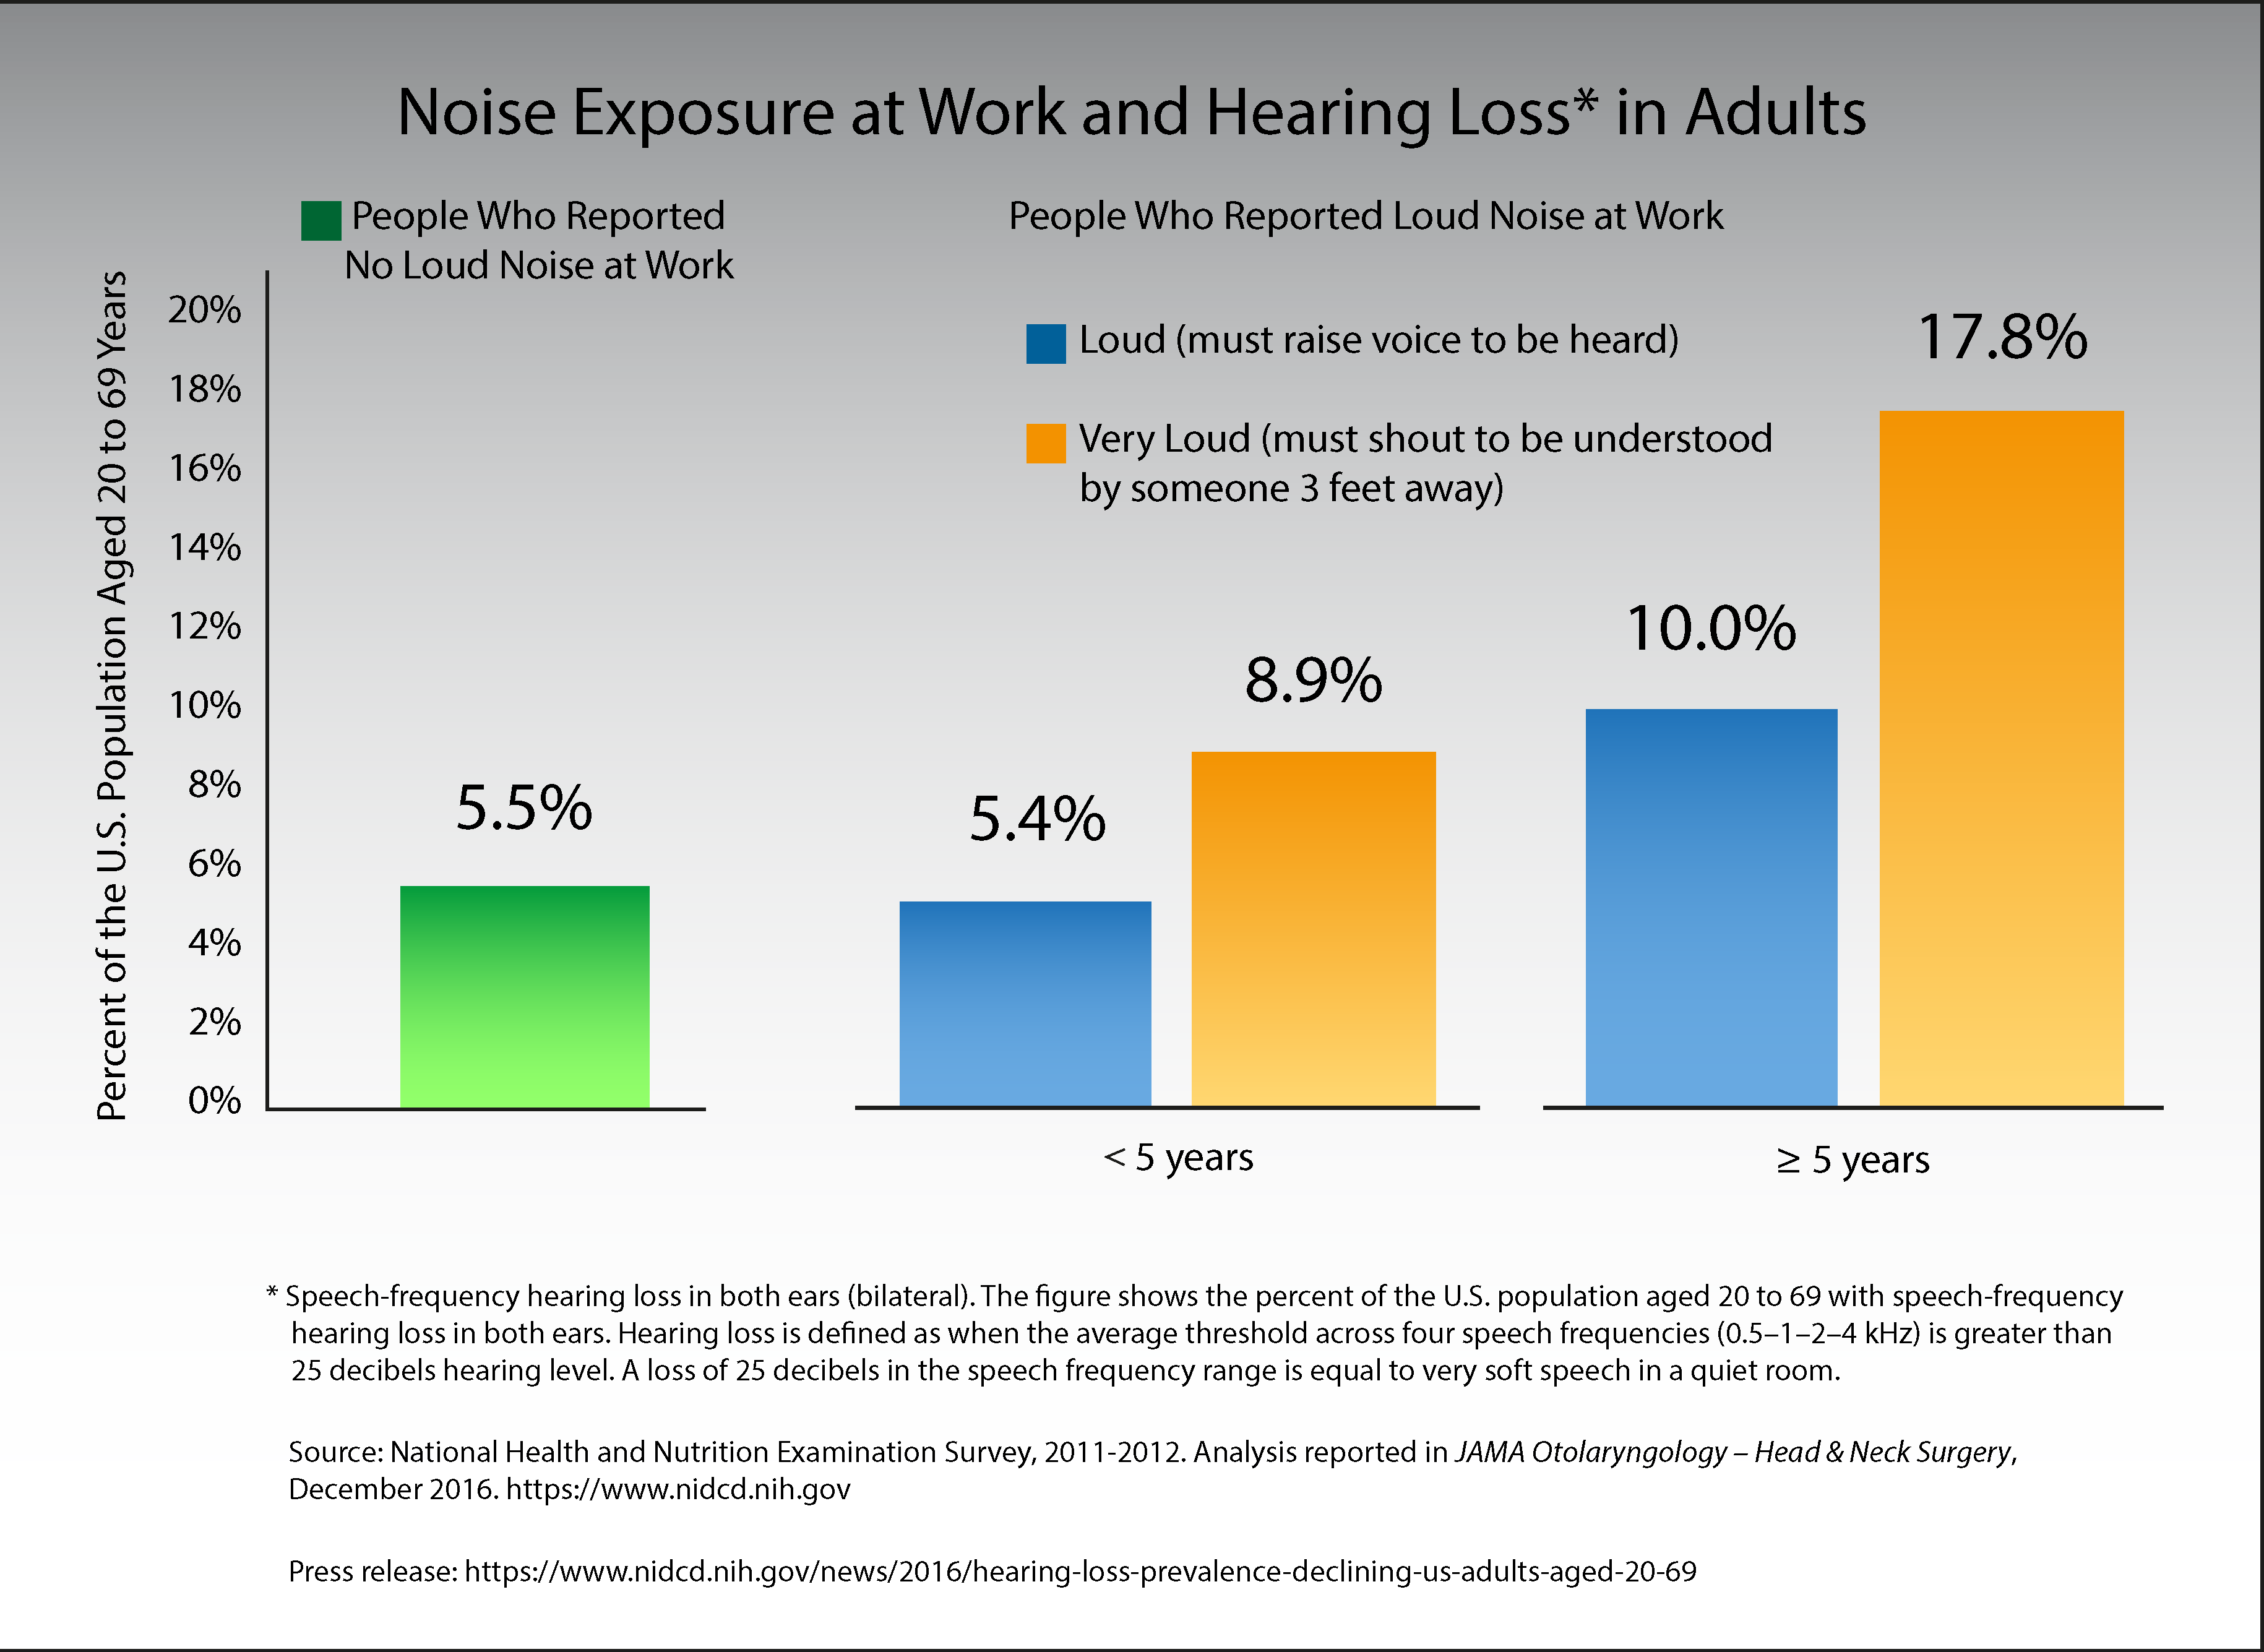 Noise Exposure at Work and Hearing Loss in Adults